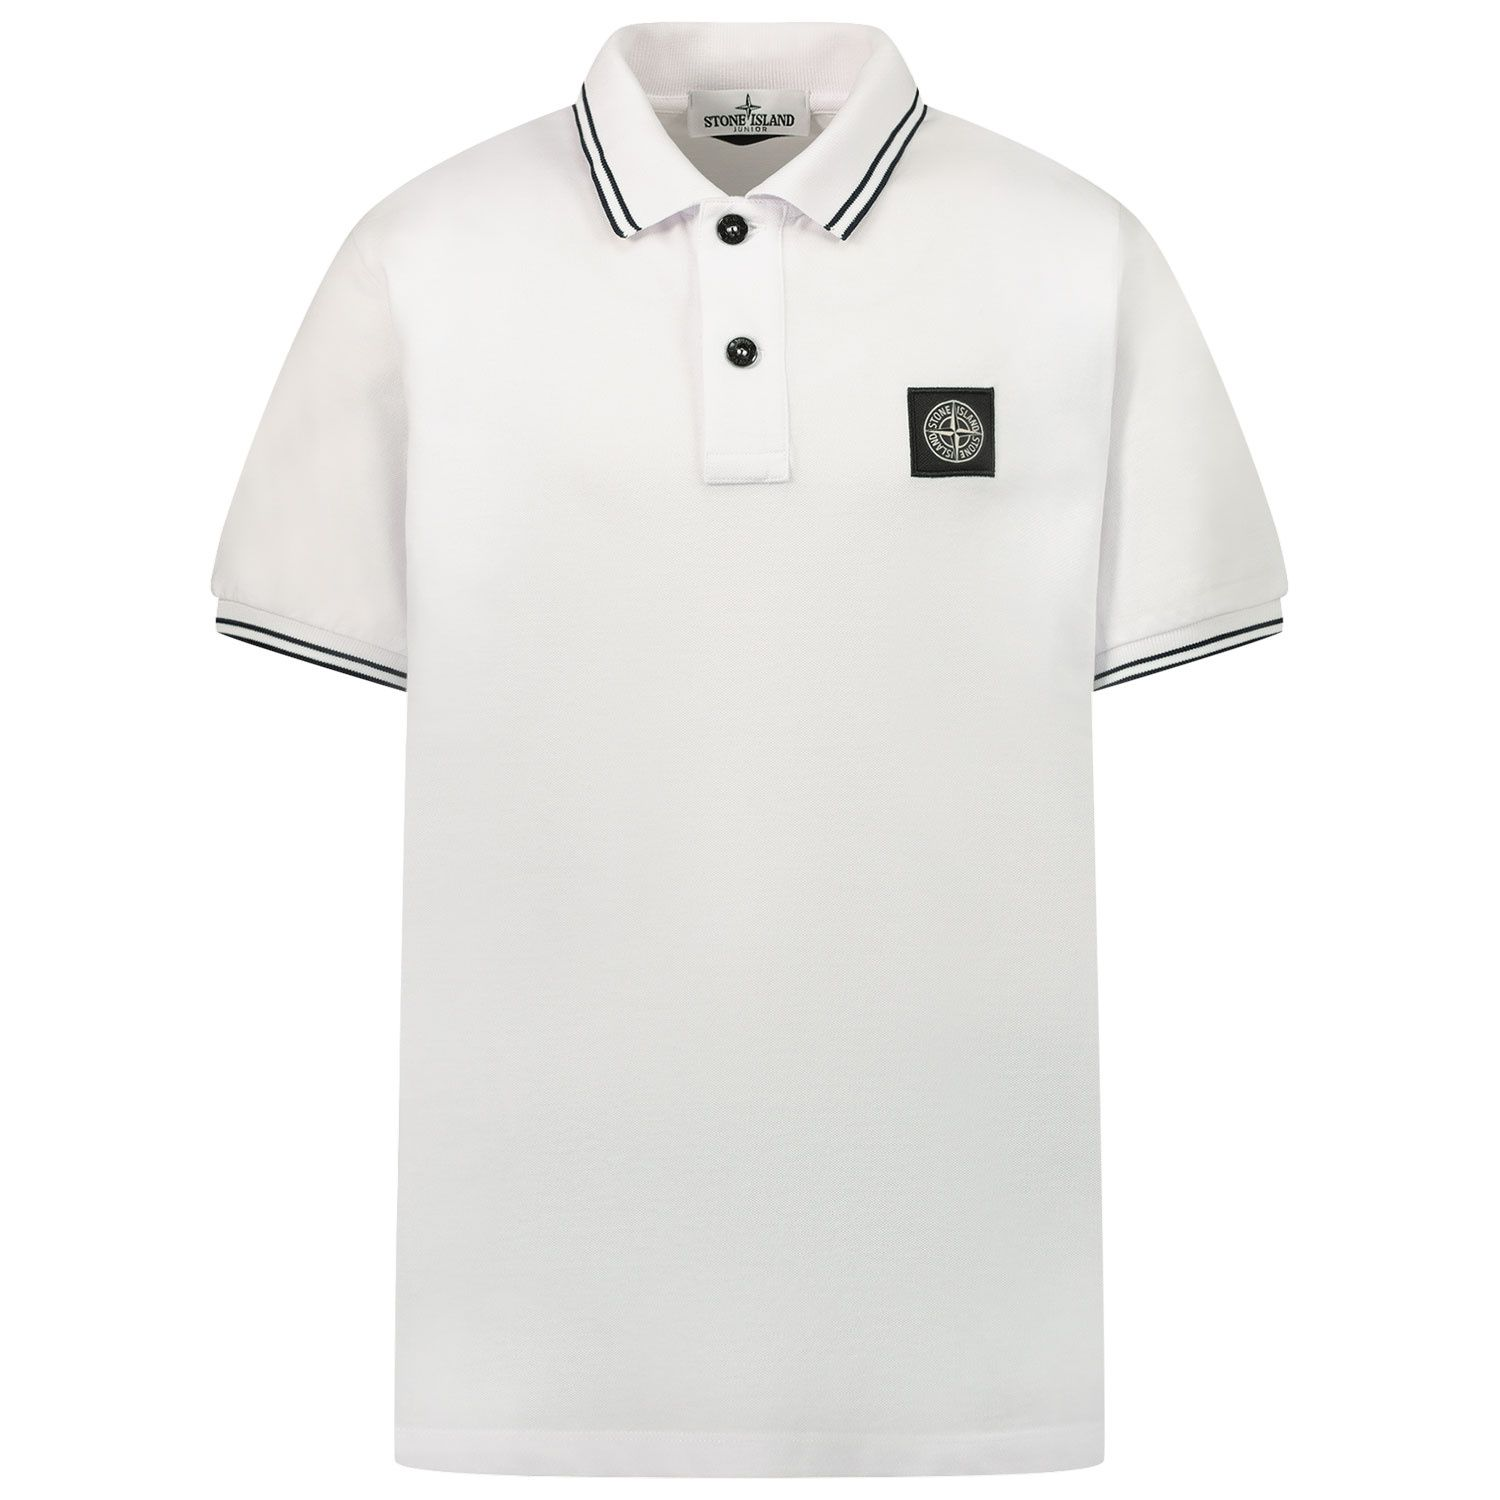 Picture of Stone Island 21348 kids polo shirt white